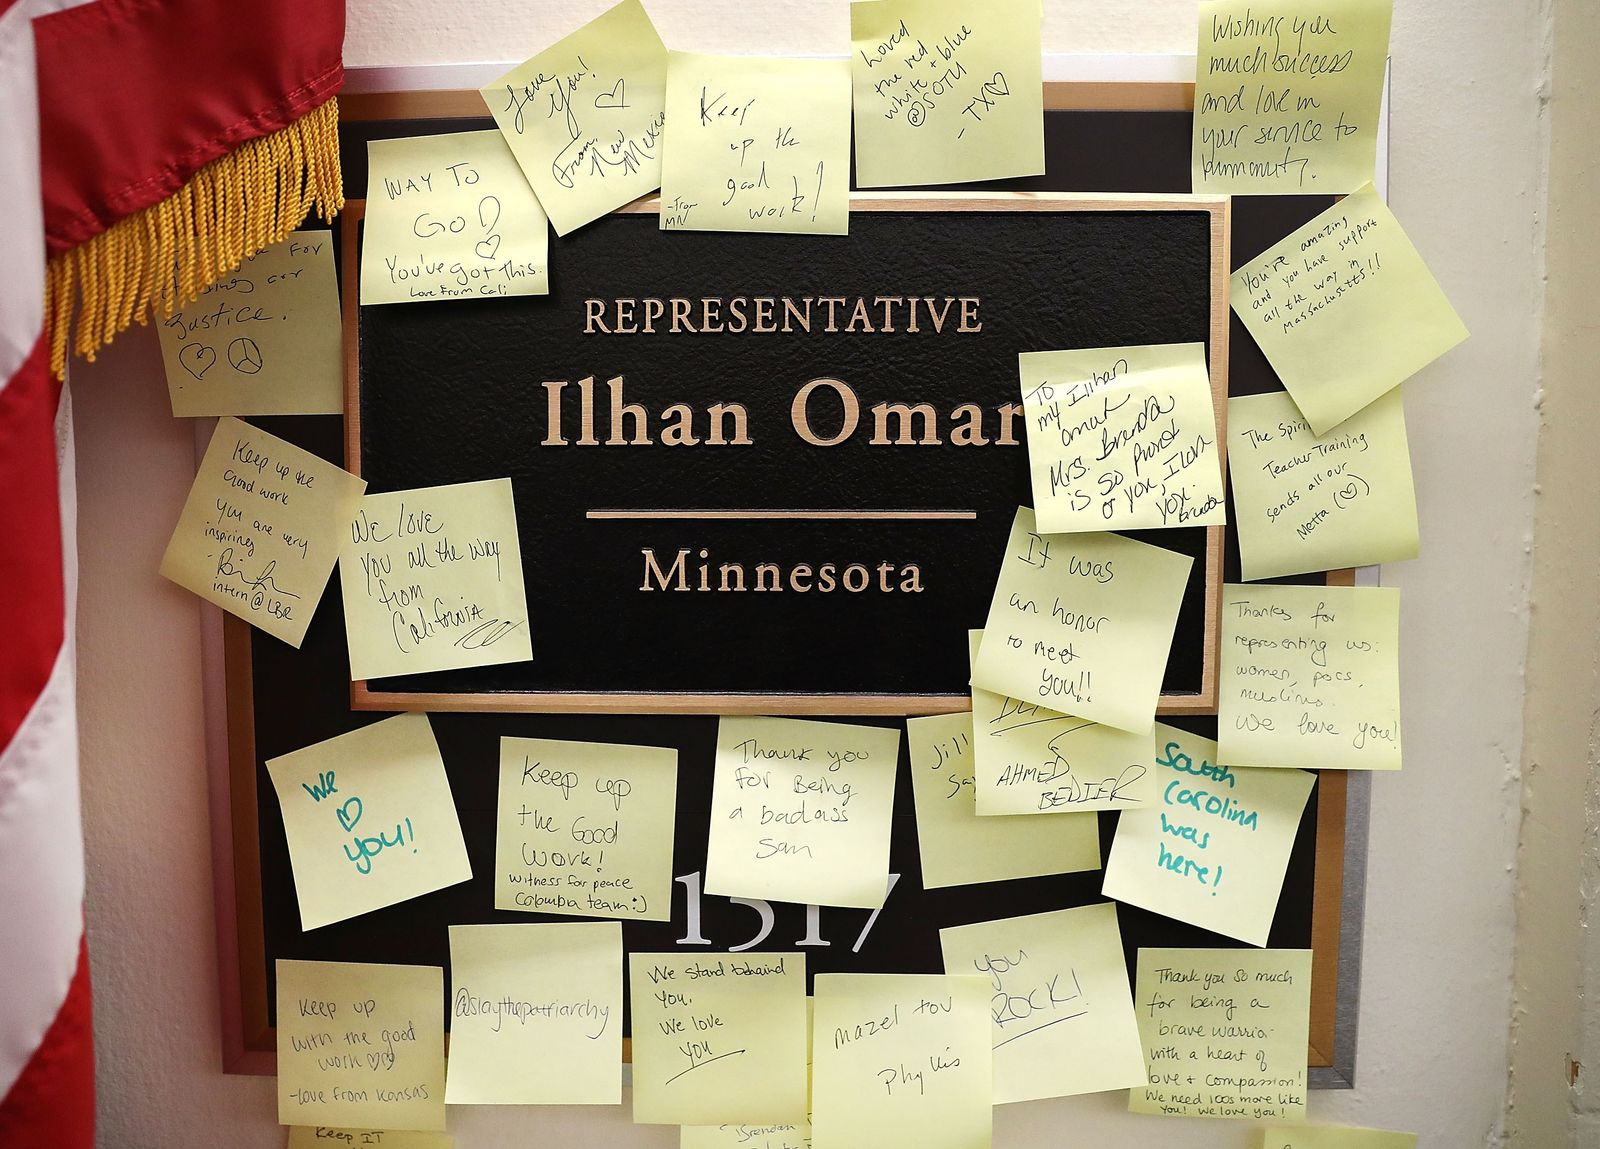 US-HOUSE-DEMOCRATS-DENOUNCE-A-CONTROVERSIAL-TWEET-BY-REP.-ILHAN-